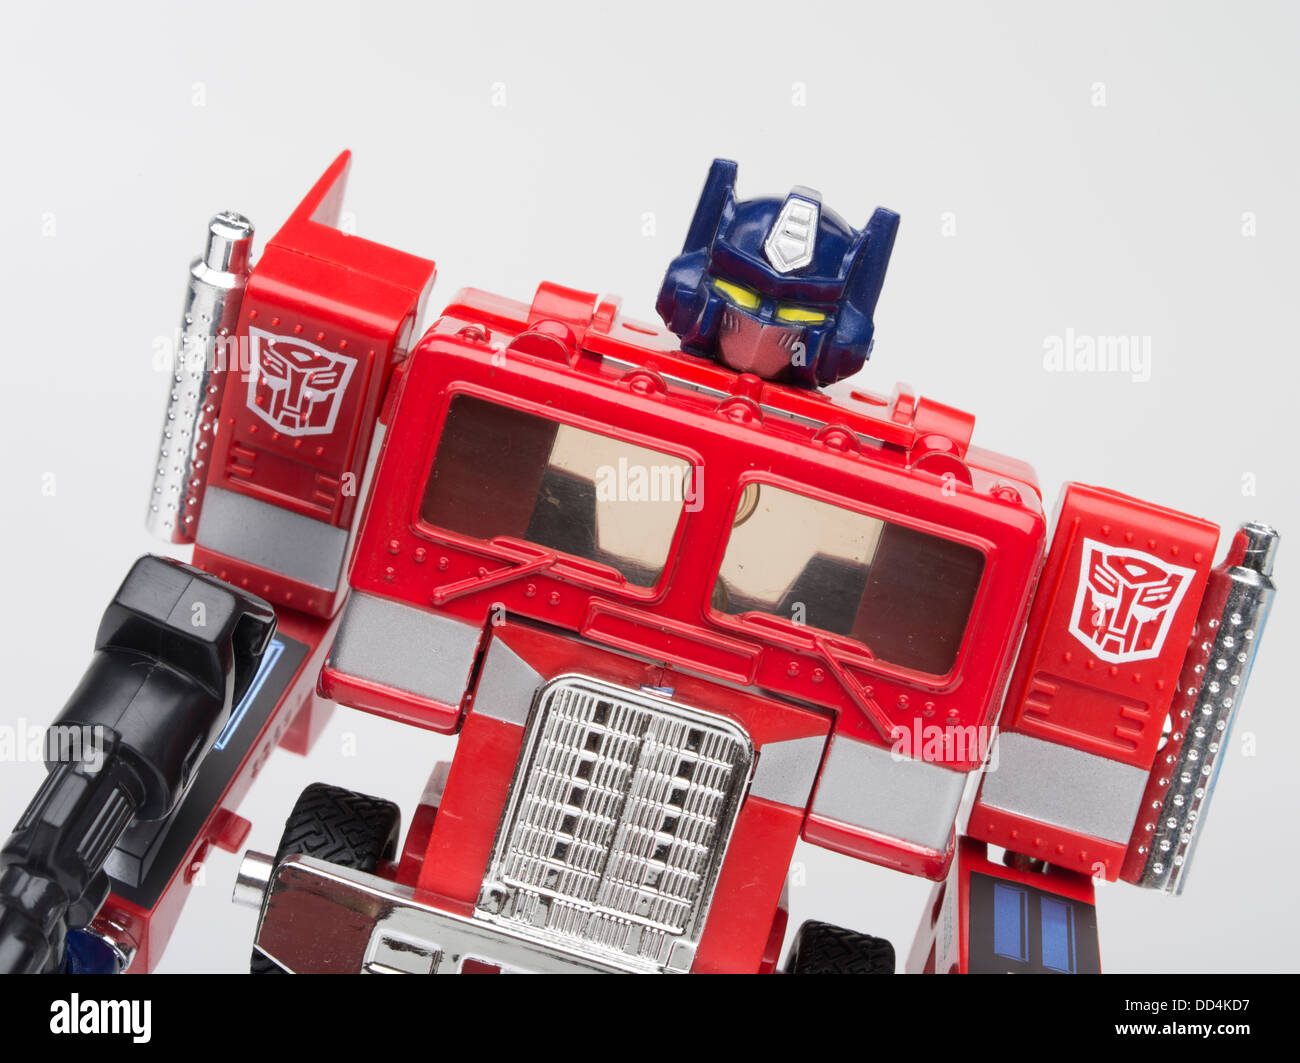 Optimus Prime Transformers Toy by Takara / Takara Tomy / Hasbro First Generation ( 1984 ) Robot action figure Autobot - Stock Image